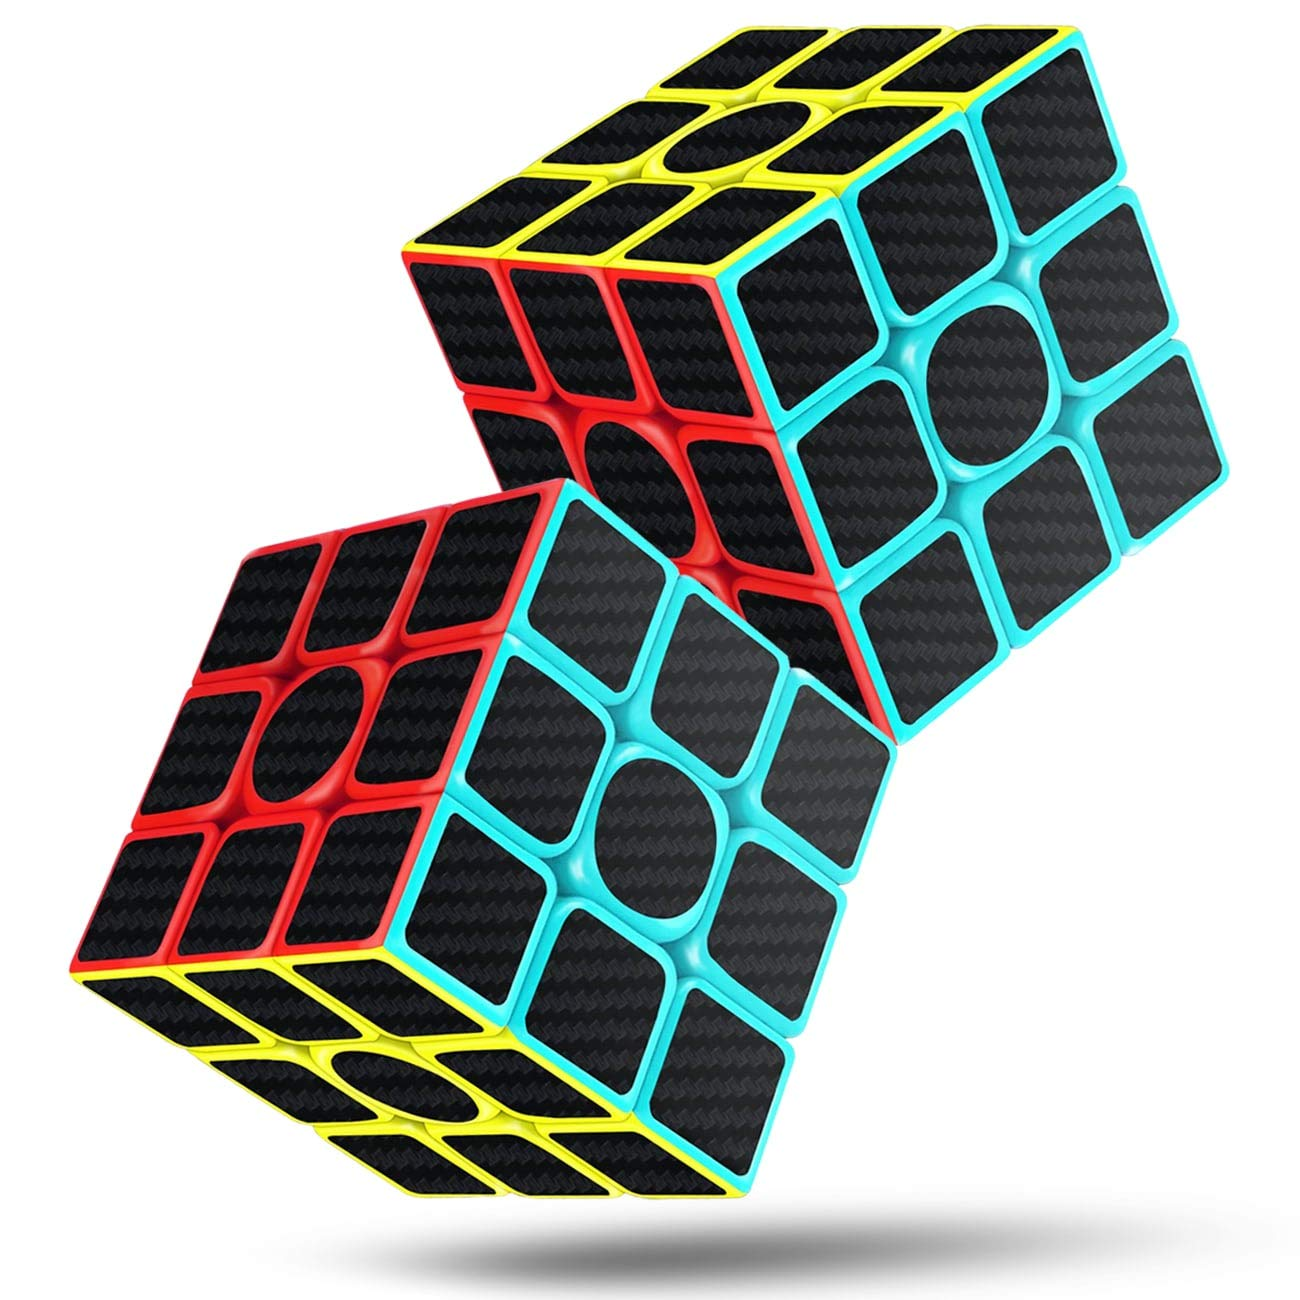 Rubiks Cube Speed Cube 3x3x3 Magic Carbon Fiber Sticker Smooth Rubix Cube, Enhanced Version Black - Pack of 2 by cfmour